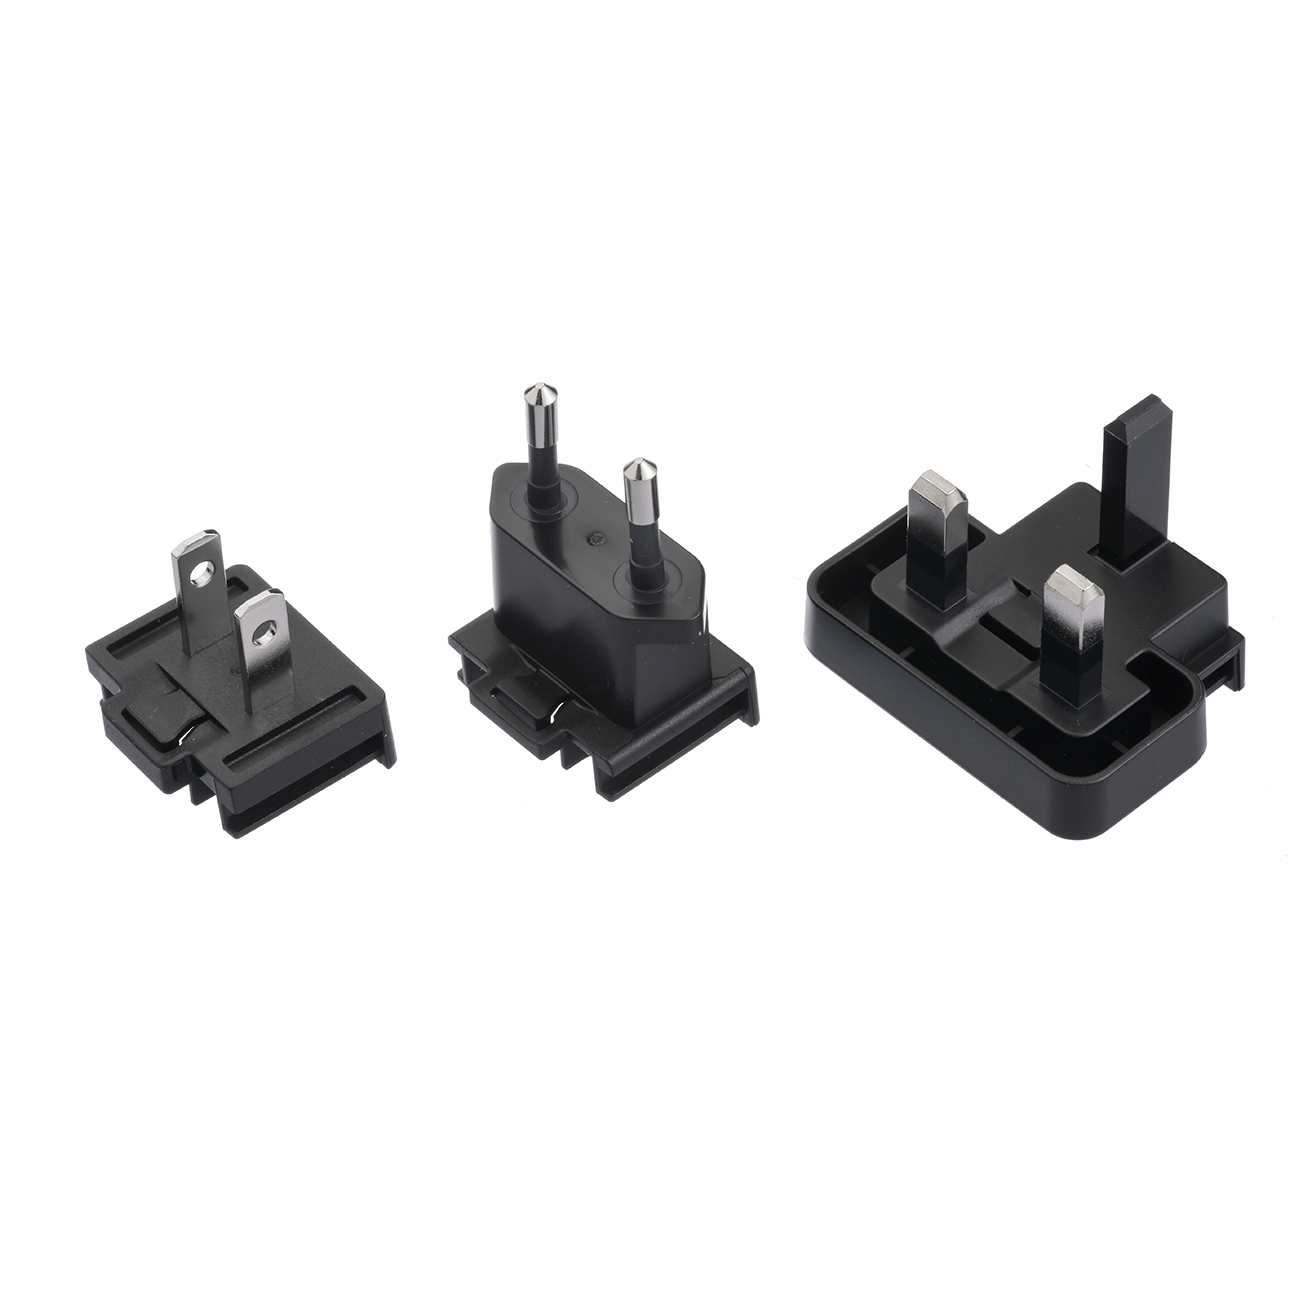 Adaptor Set (EU/UK/US)